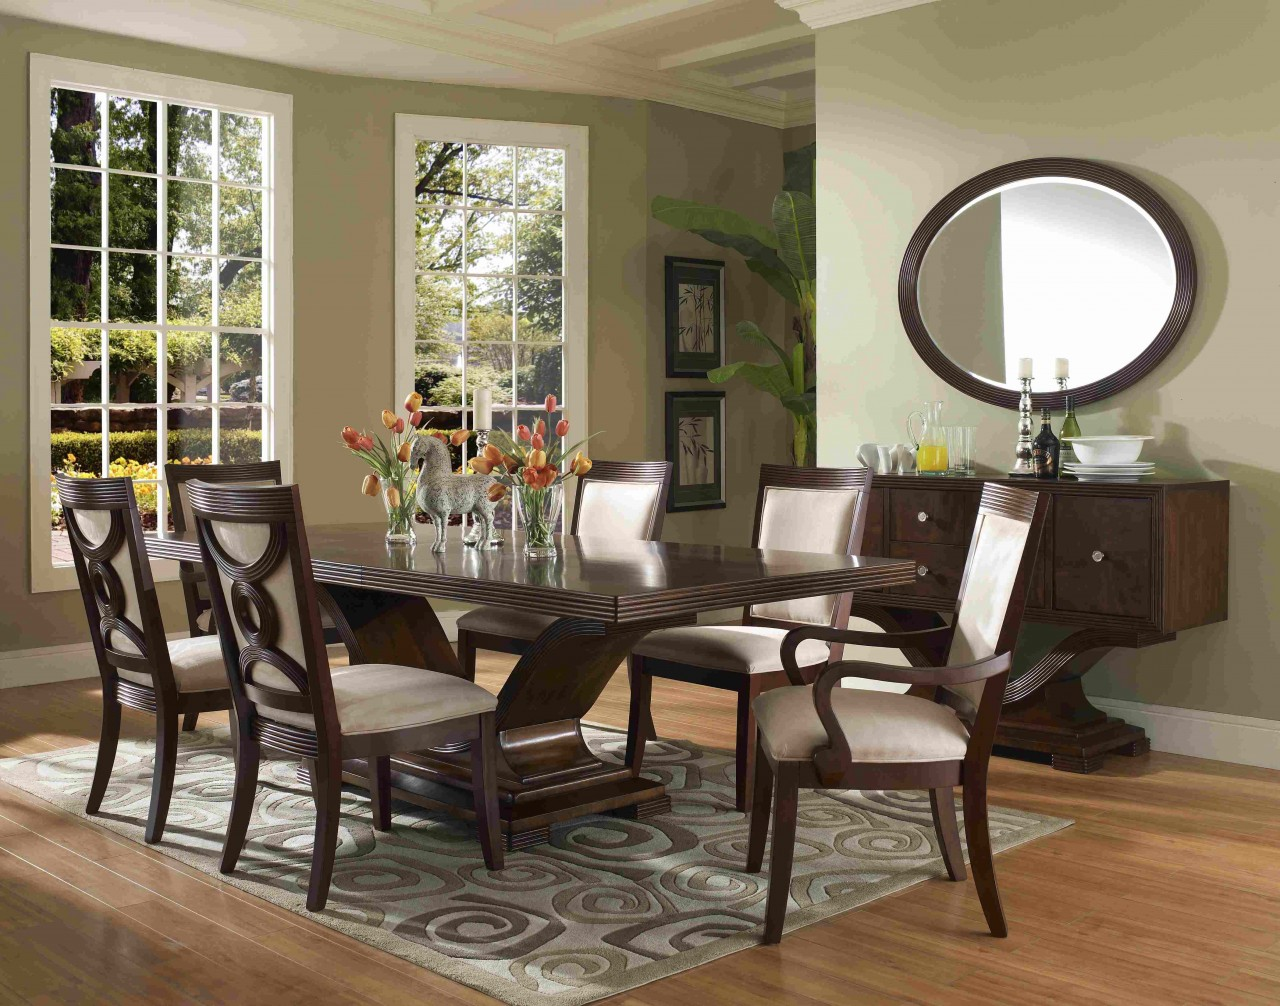 Perfect formal dining room sets for 8 homesfeed - Dining room sets ...